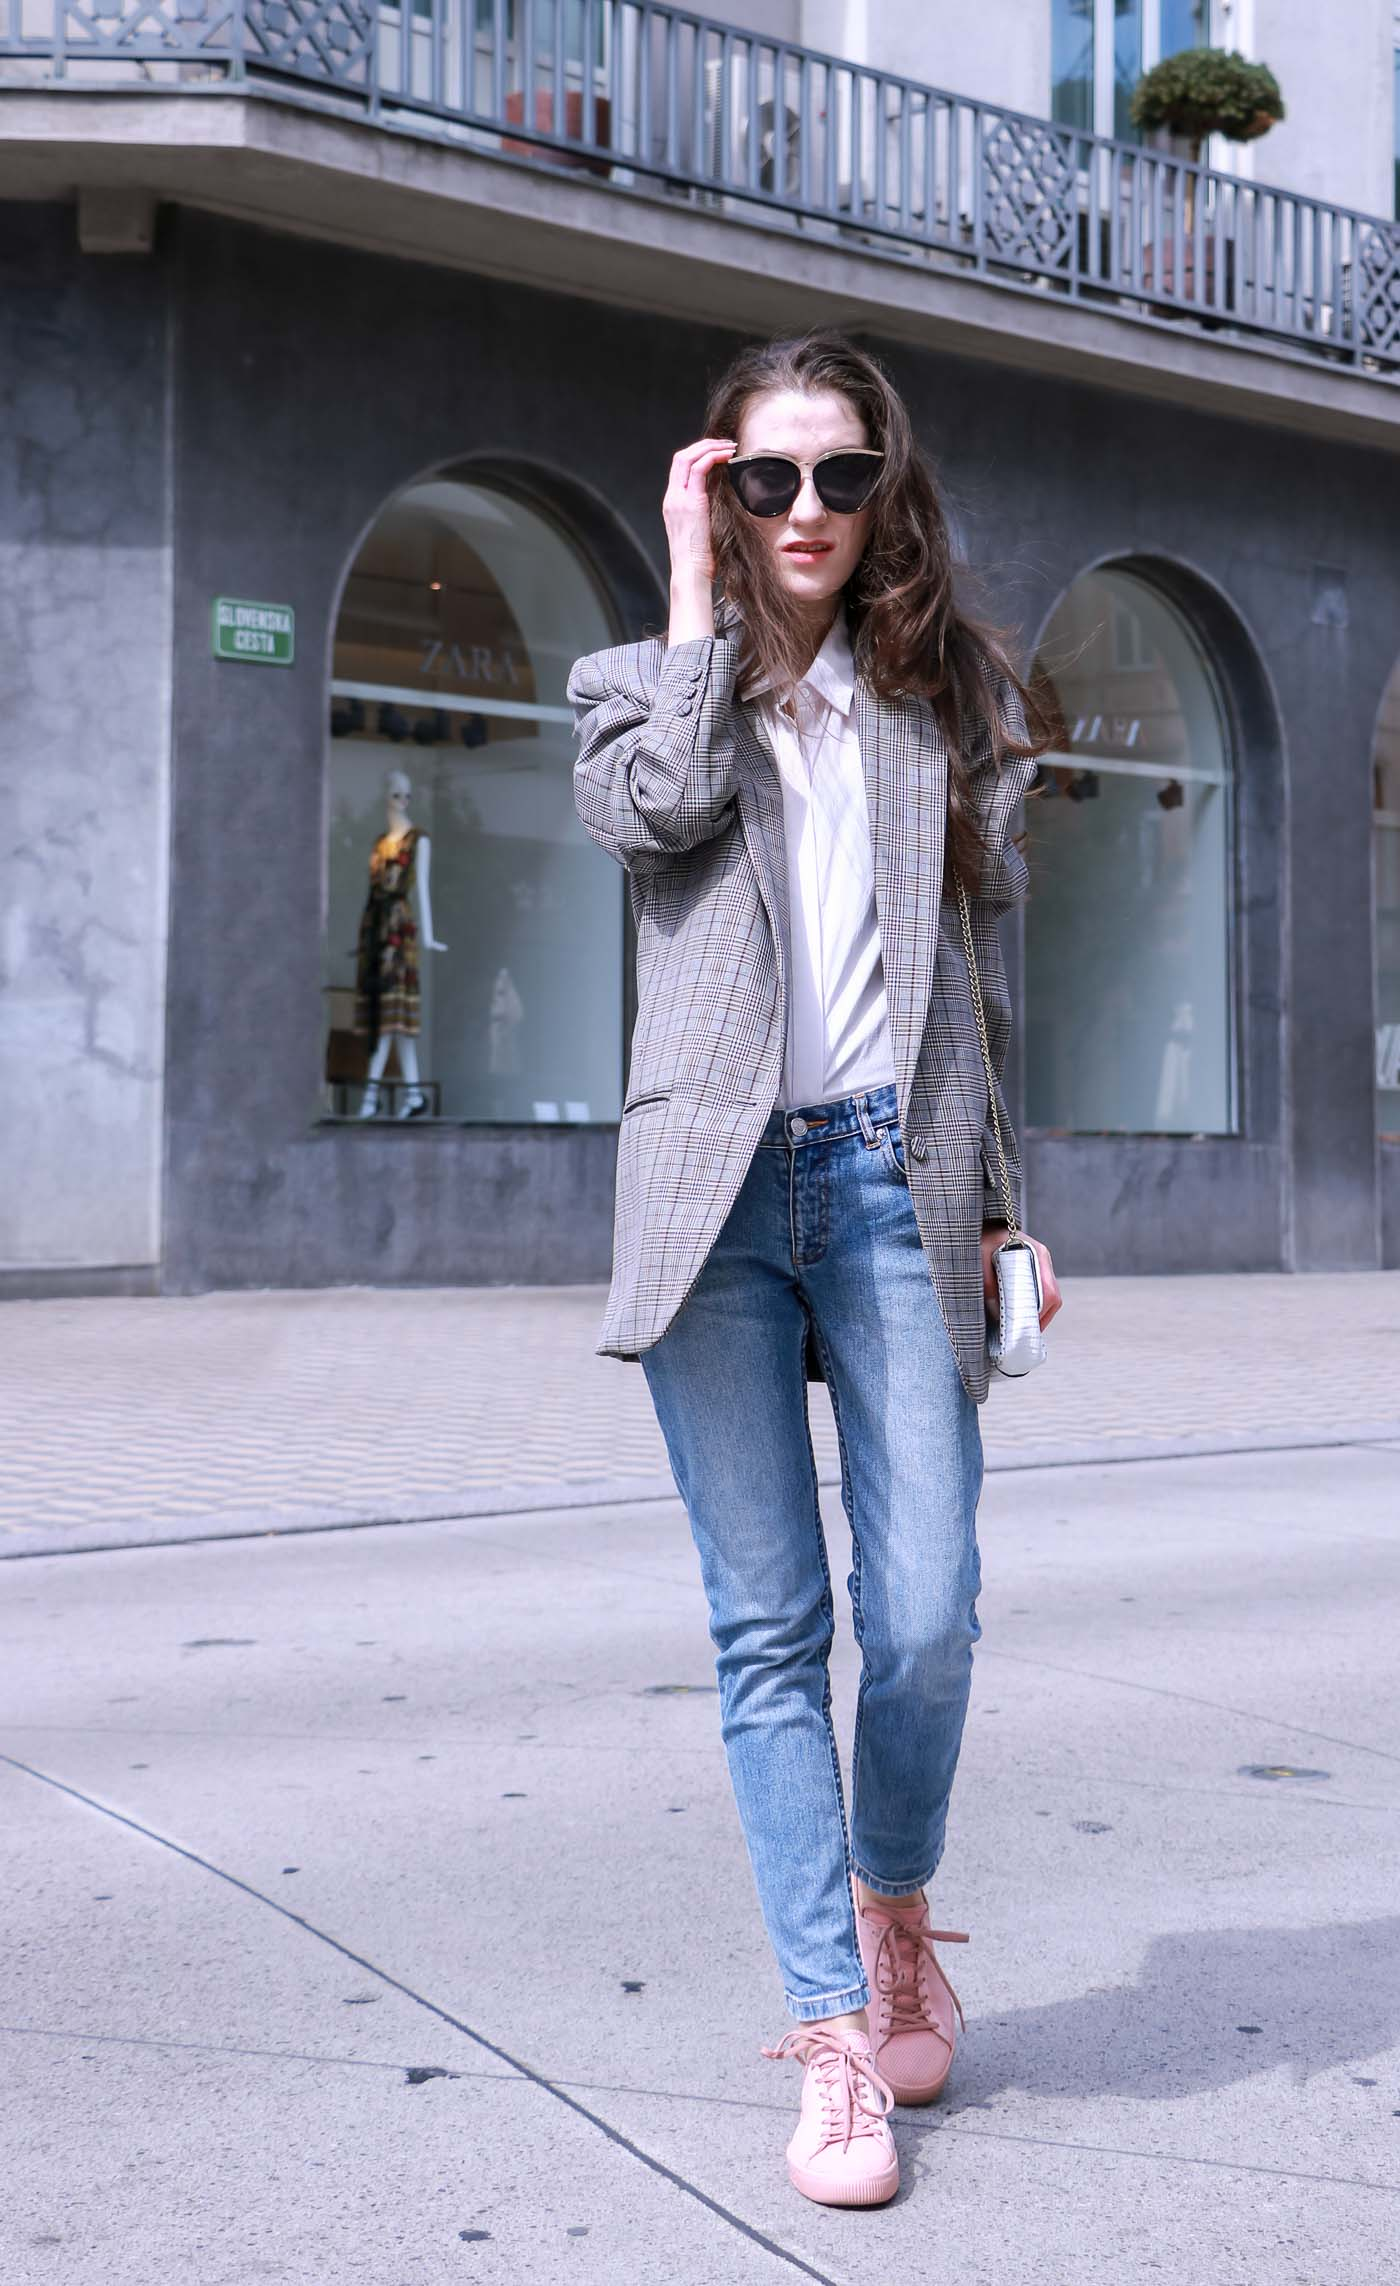 Fashion Blogger Veronika Lipar of Brunette from Wall Street wearing chic casual outfit